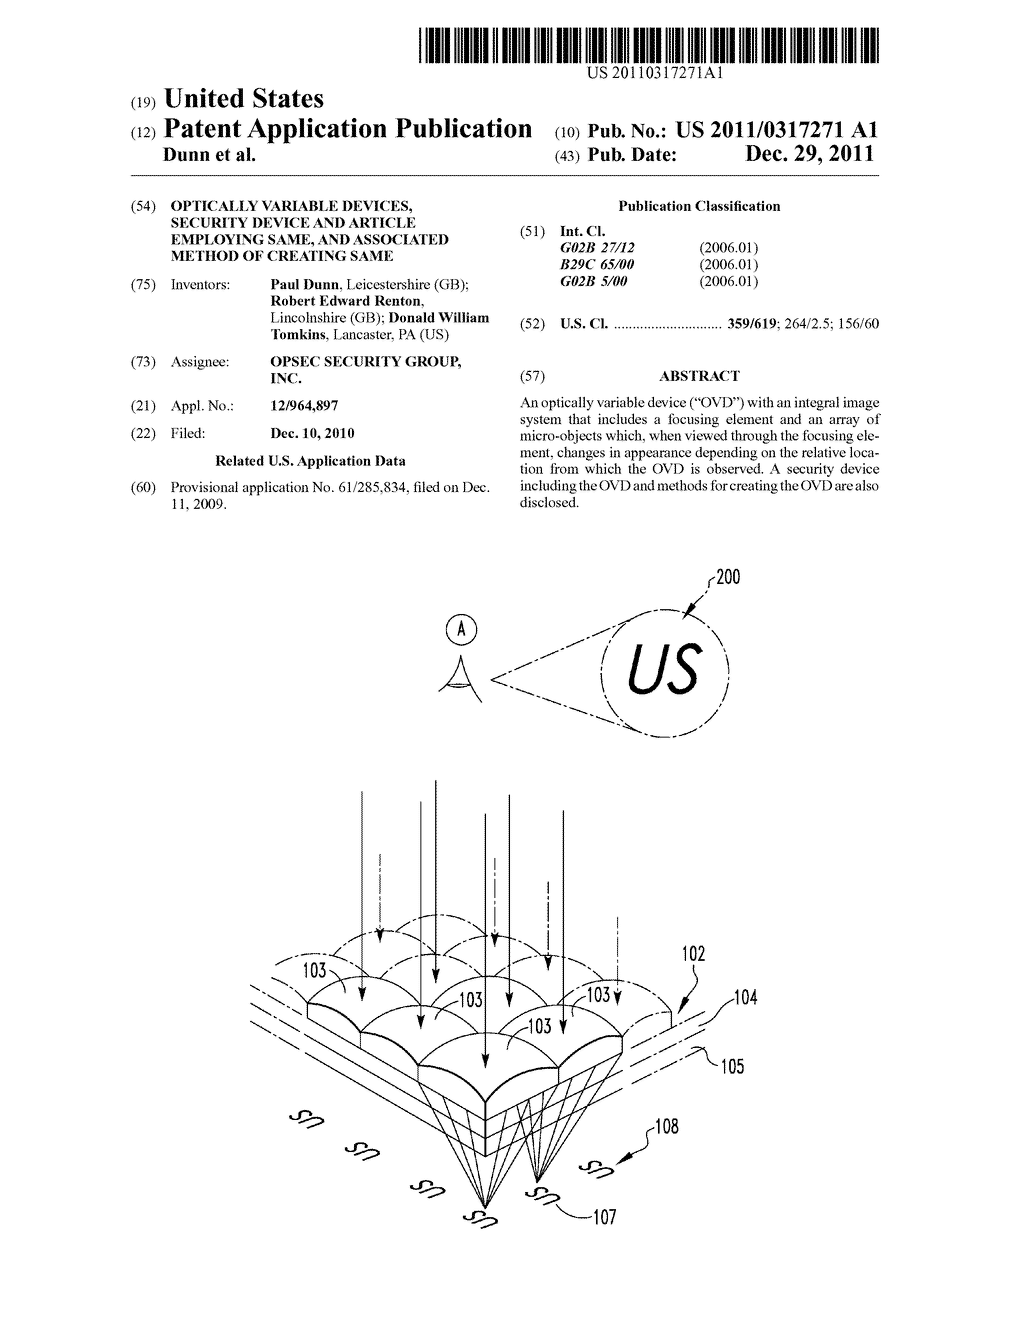 OPTICALLY VARIABLE DEVICES, SECURITY DEVICE AND ARTICLE EMPLOYING SAME,     AND ASSOCIATED METHOD OF CREATING SAME - diagram, schematic, and image 01